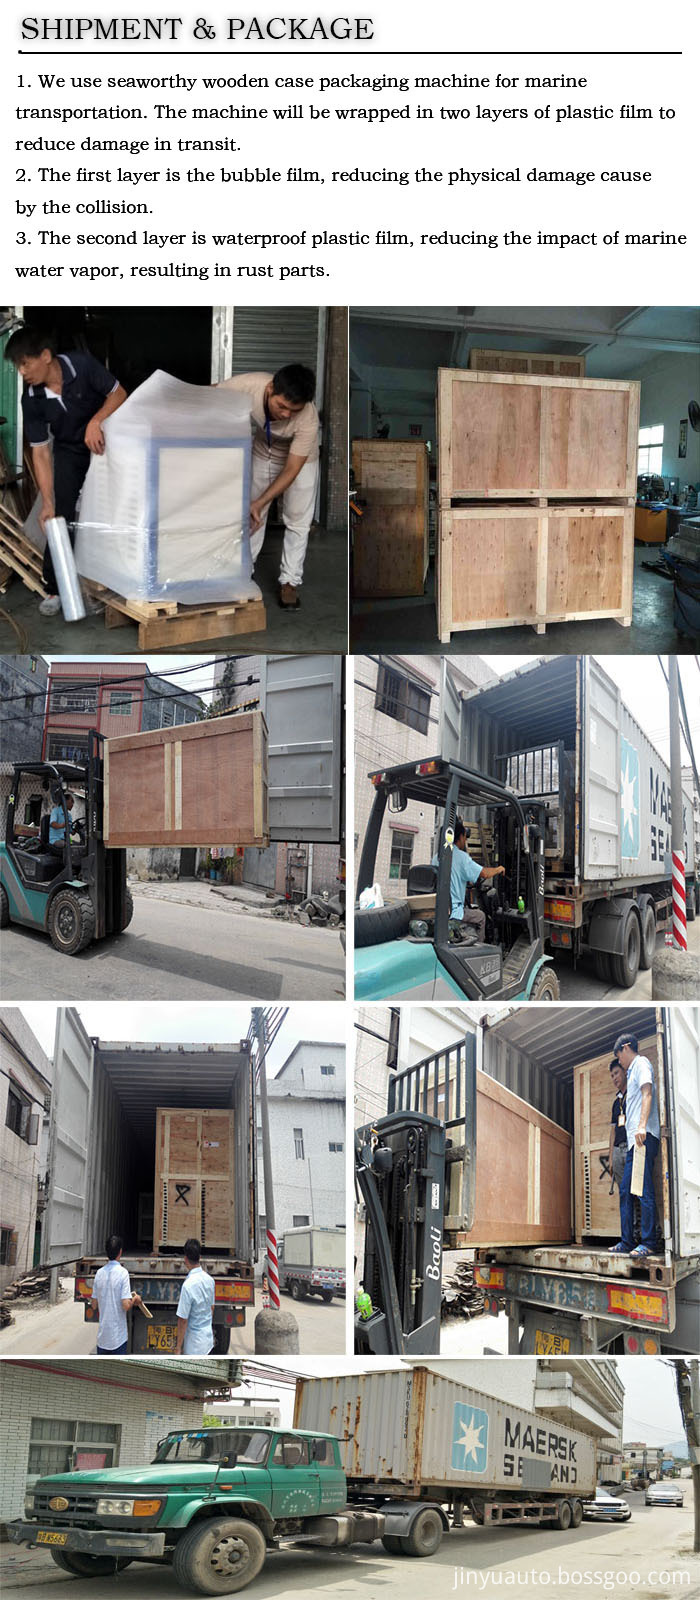 Shipment And Package